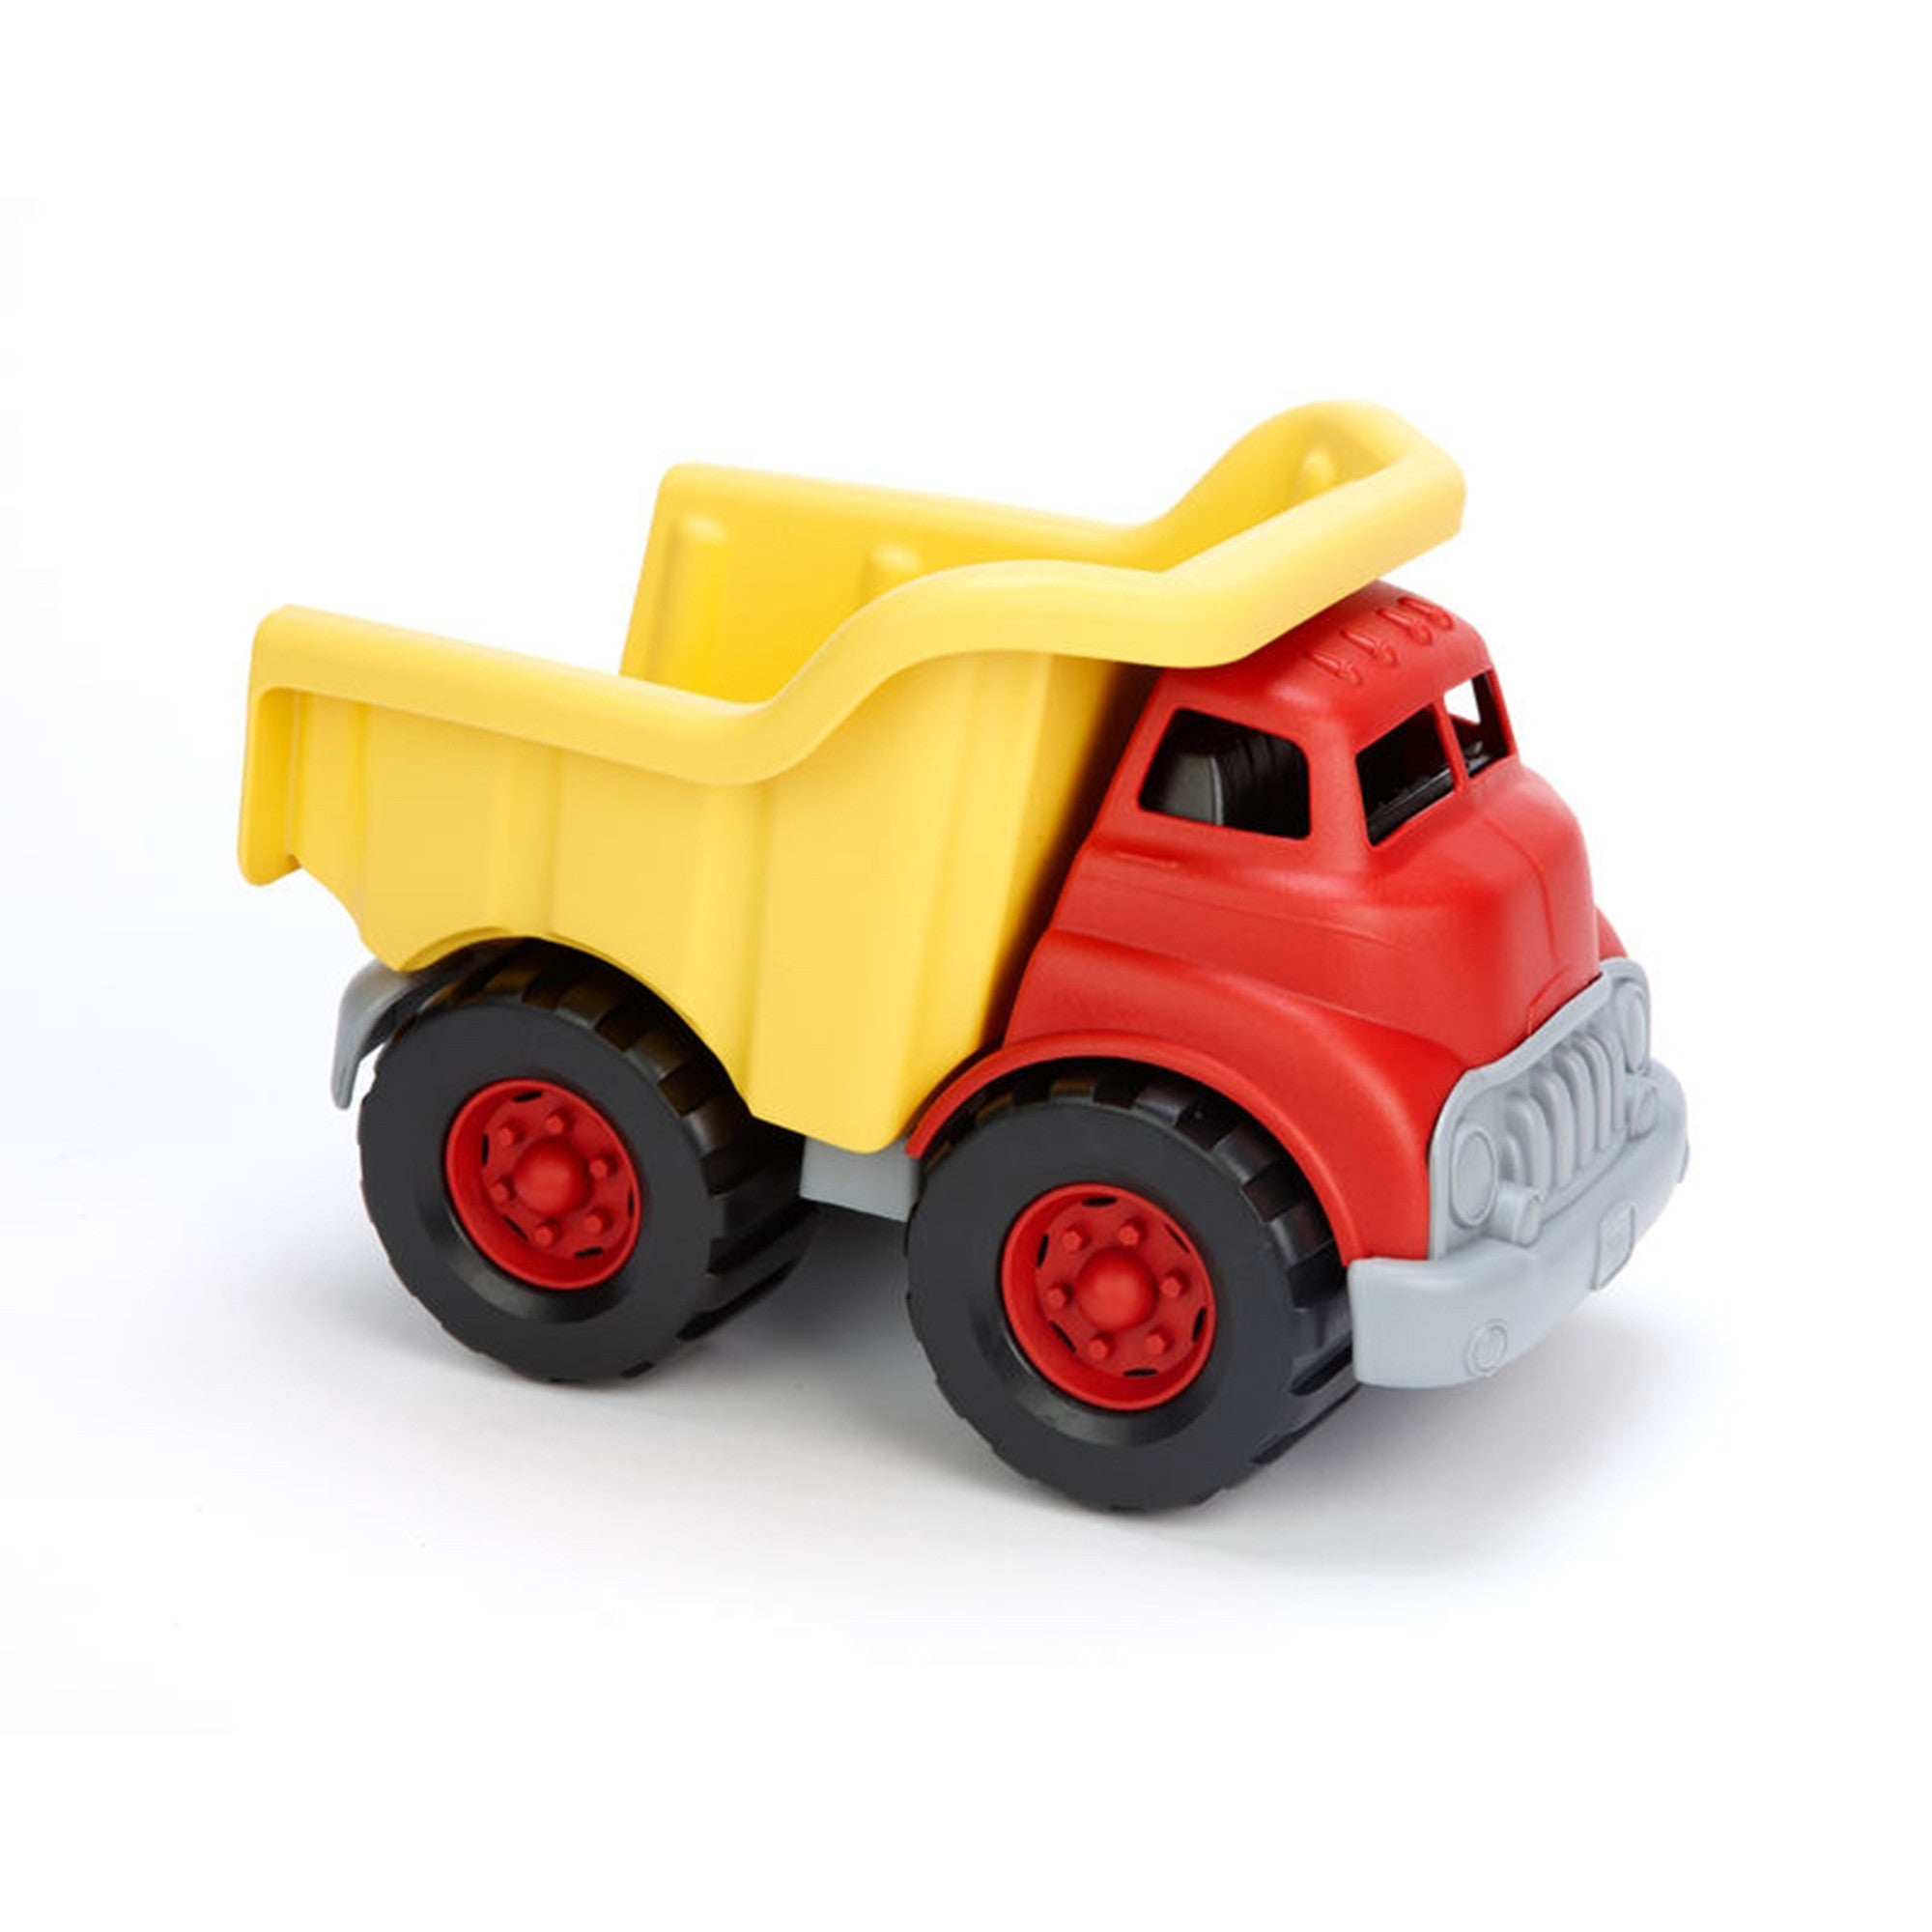 Green Toys Dump Truck  Red/Yellow - Green Toys - Little Earth Nest - 1